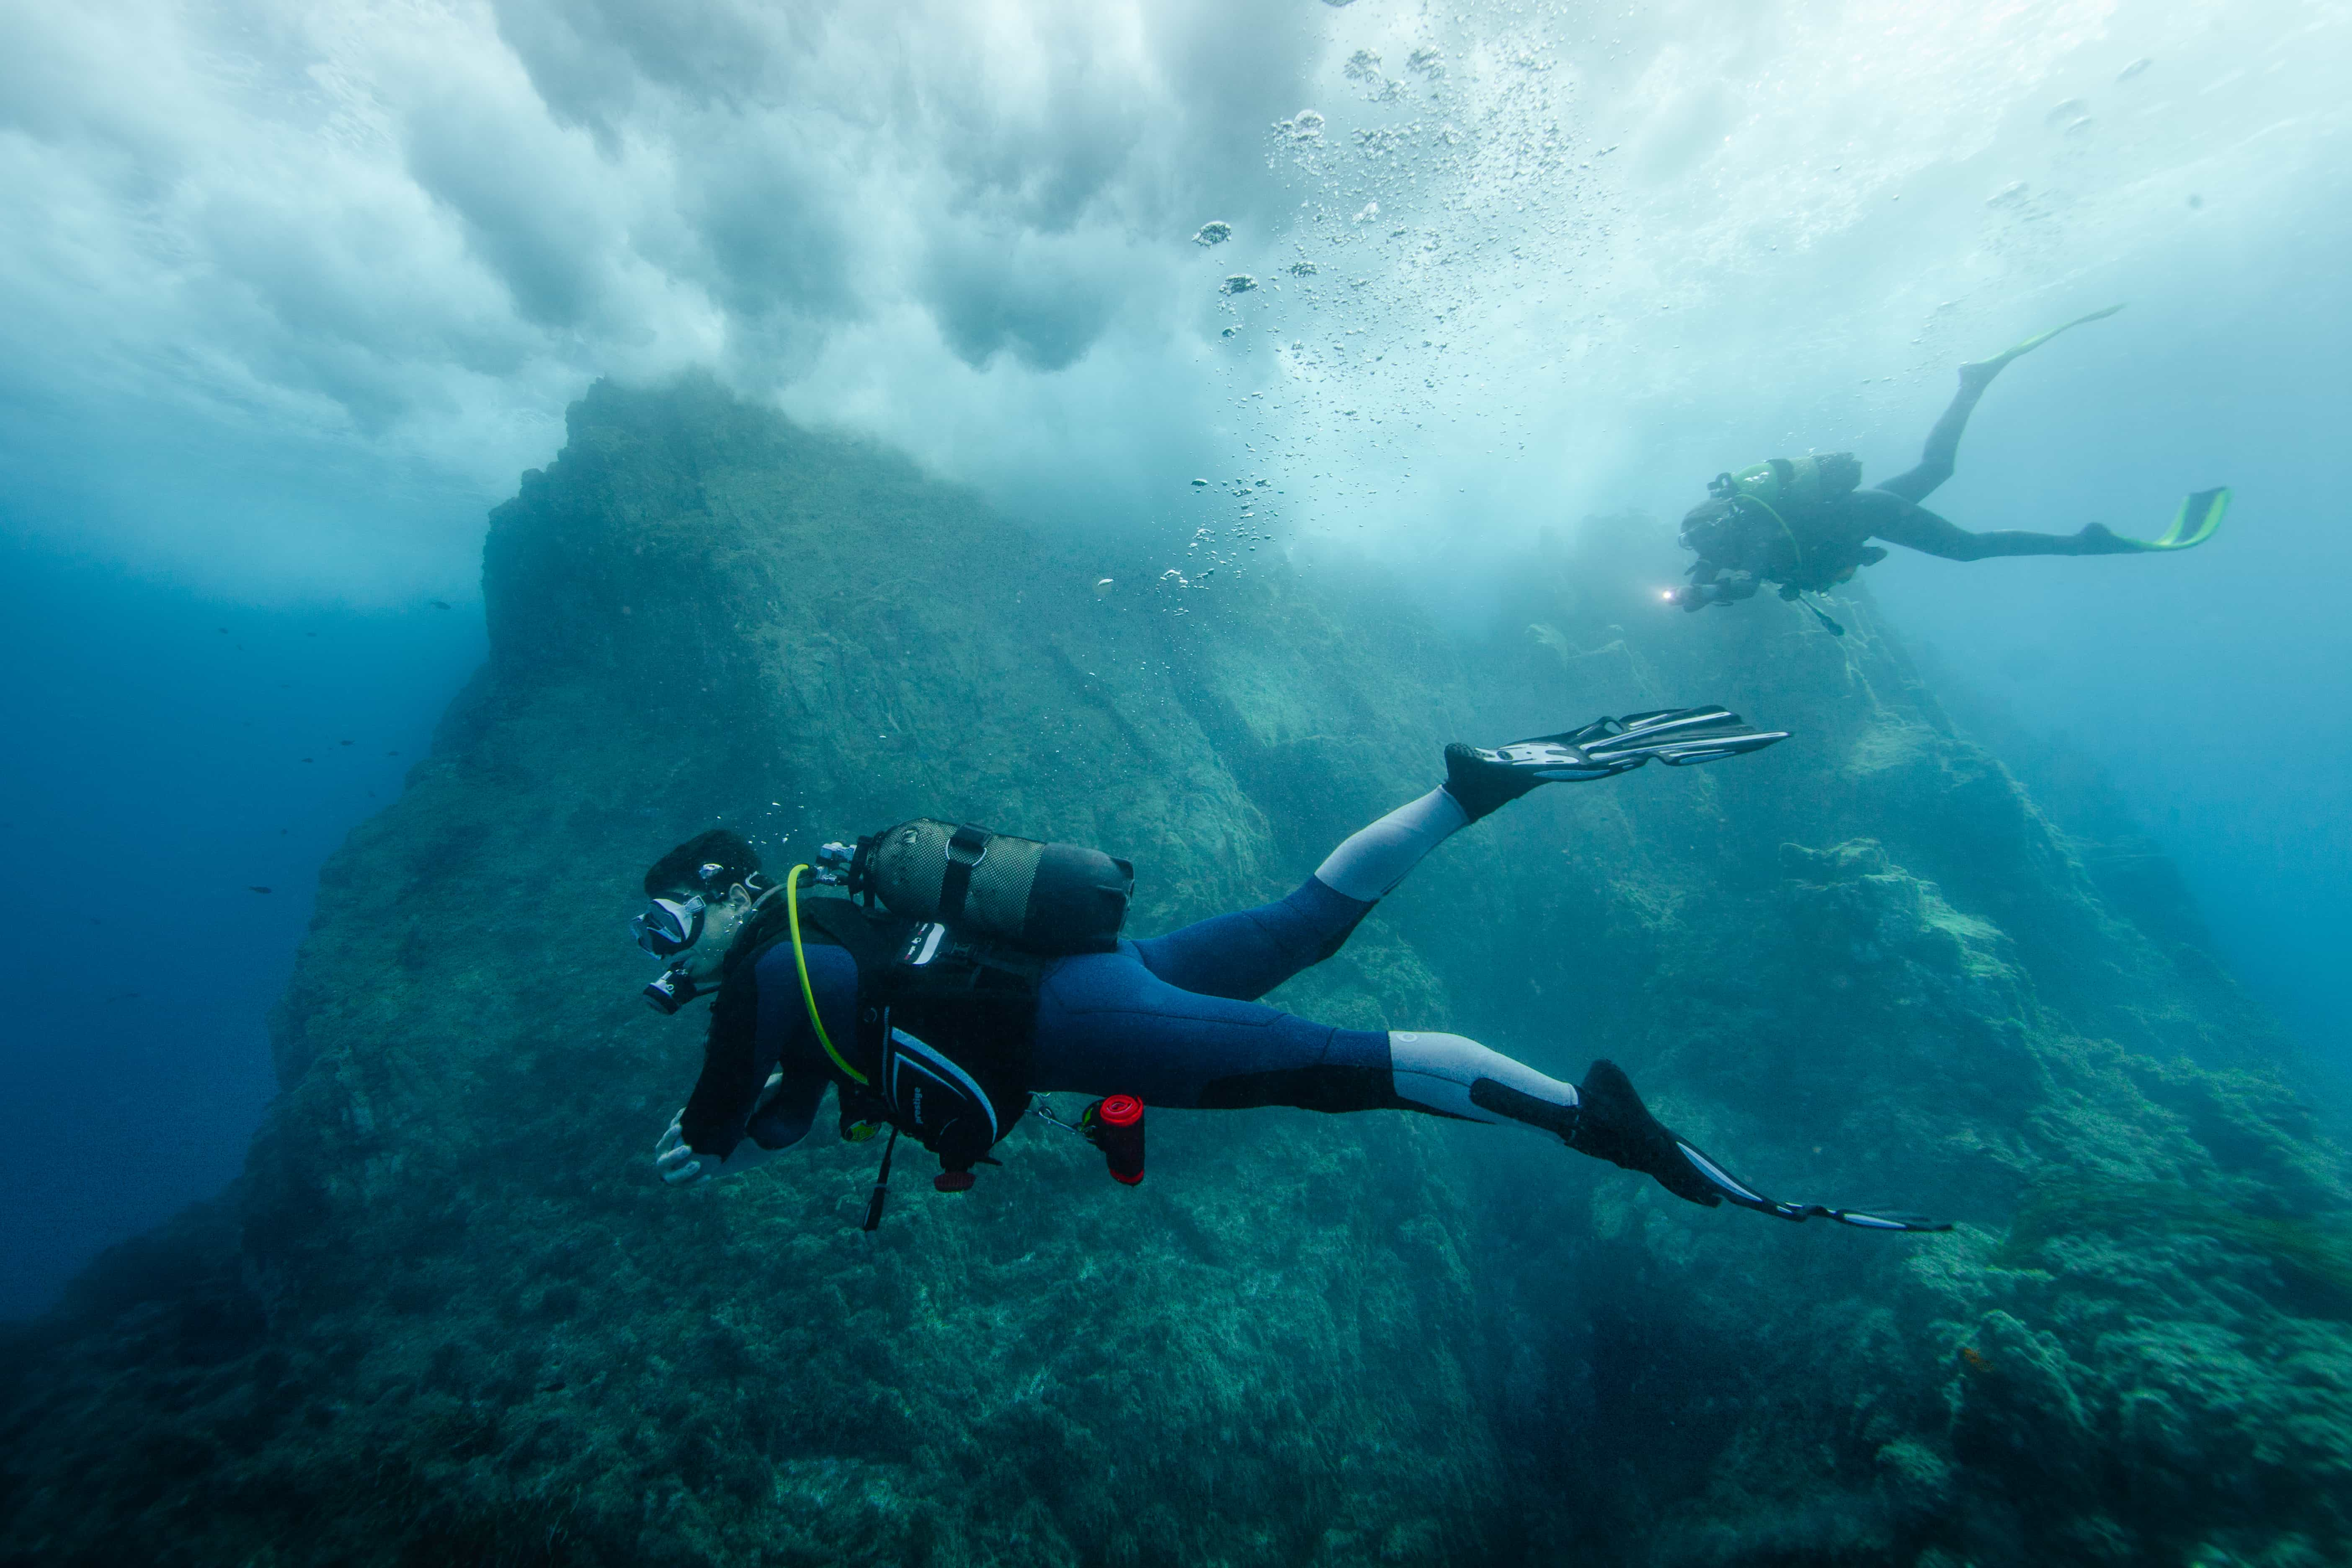 Know Your Gear - Scuba Diving